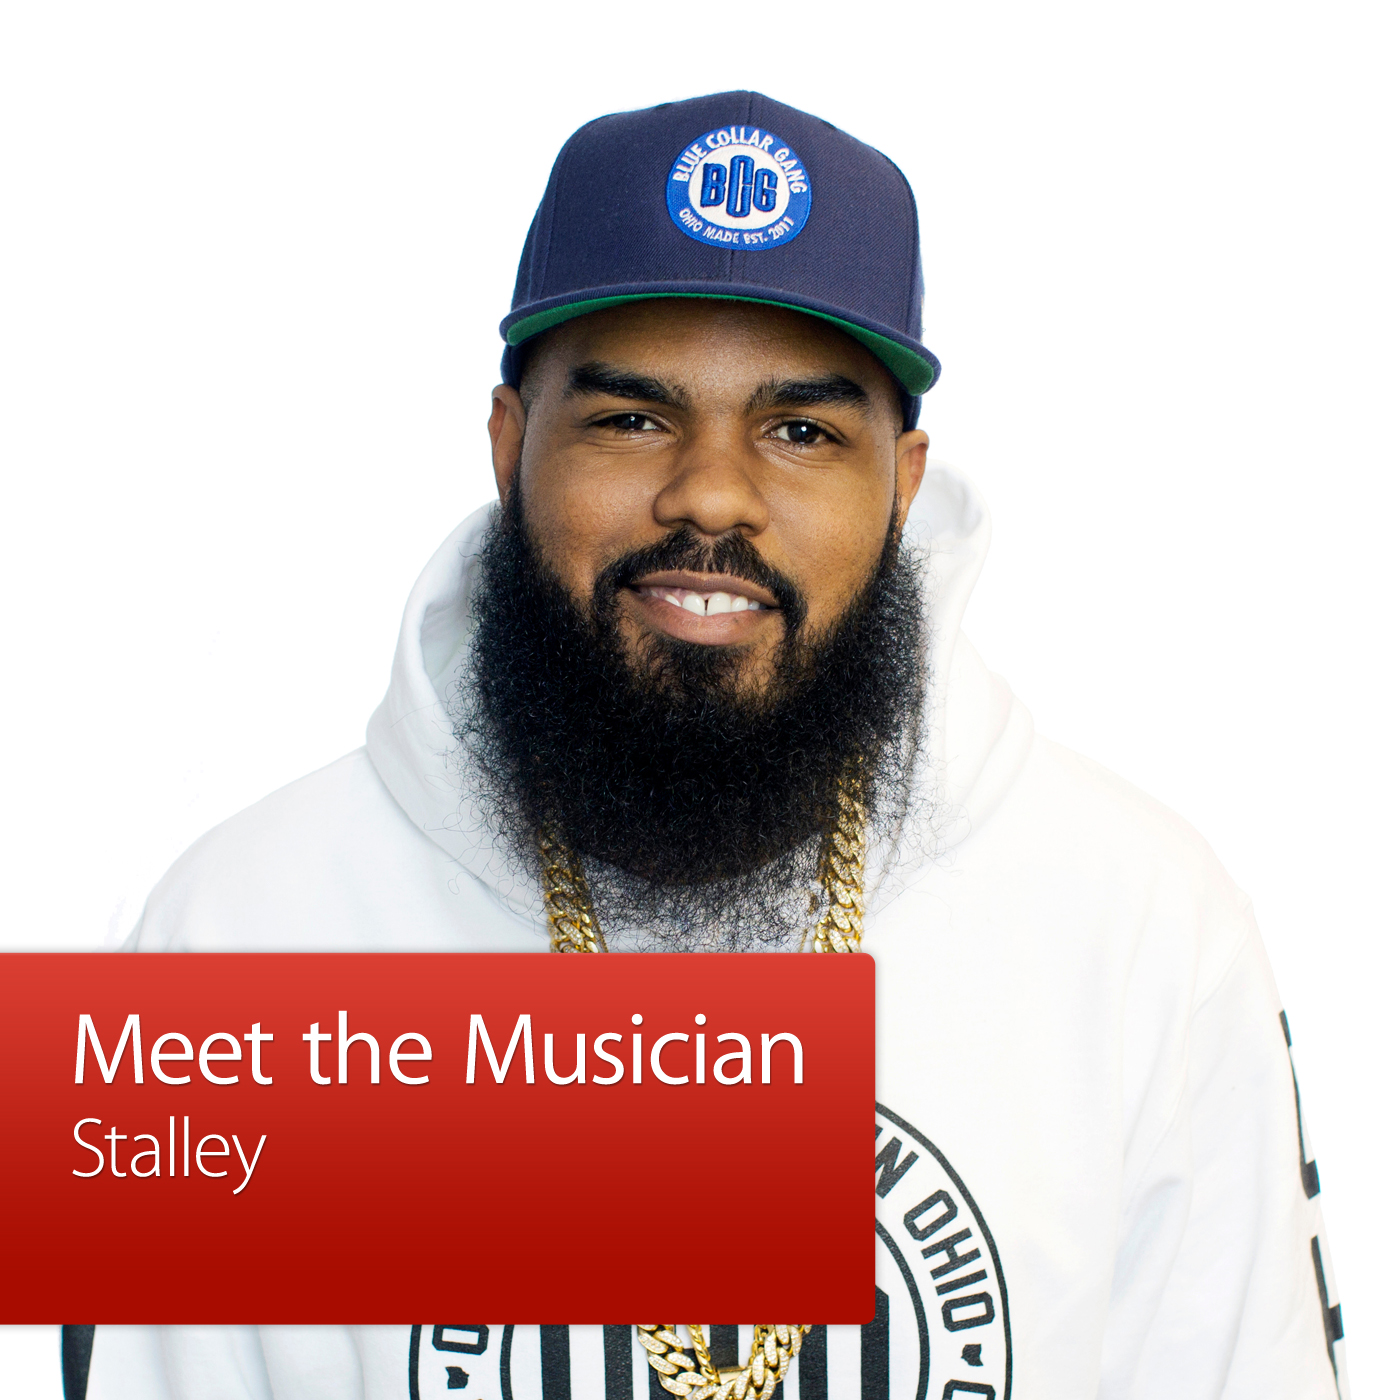 Stalley: Meet the Musician